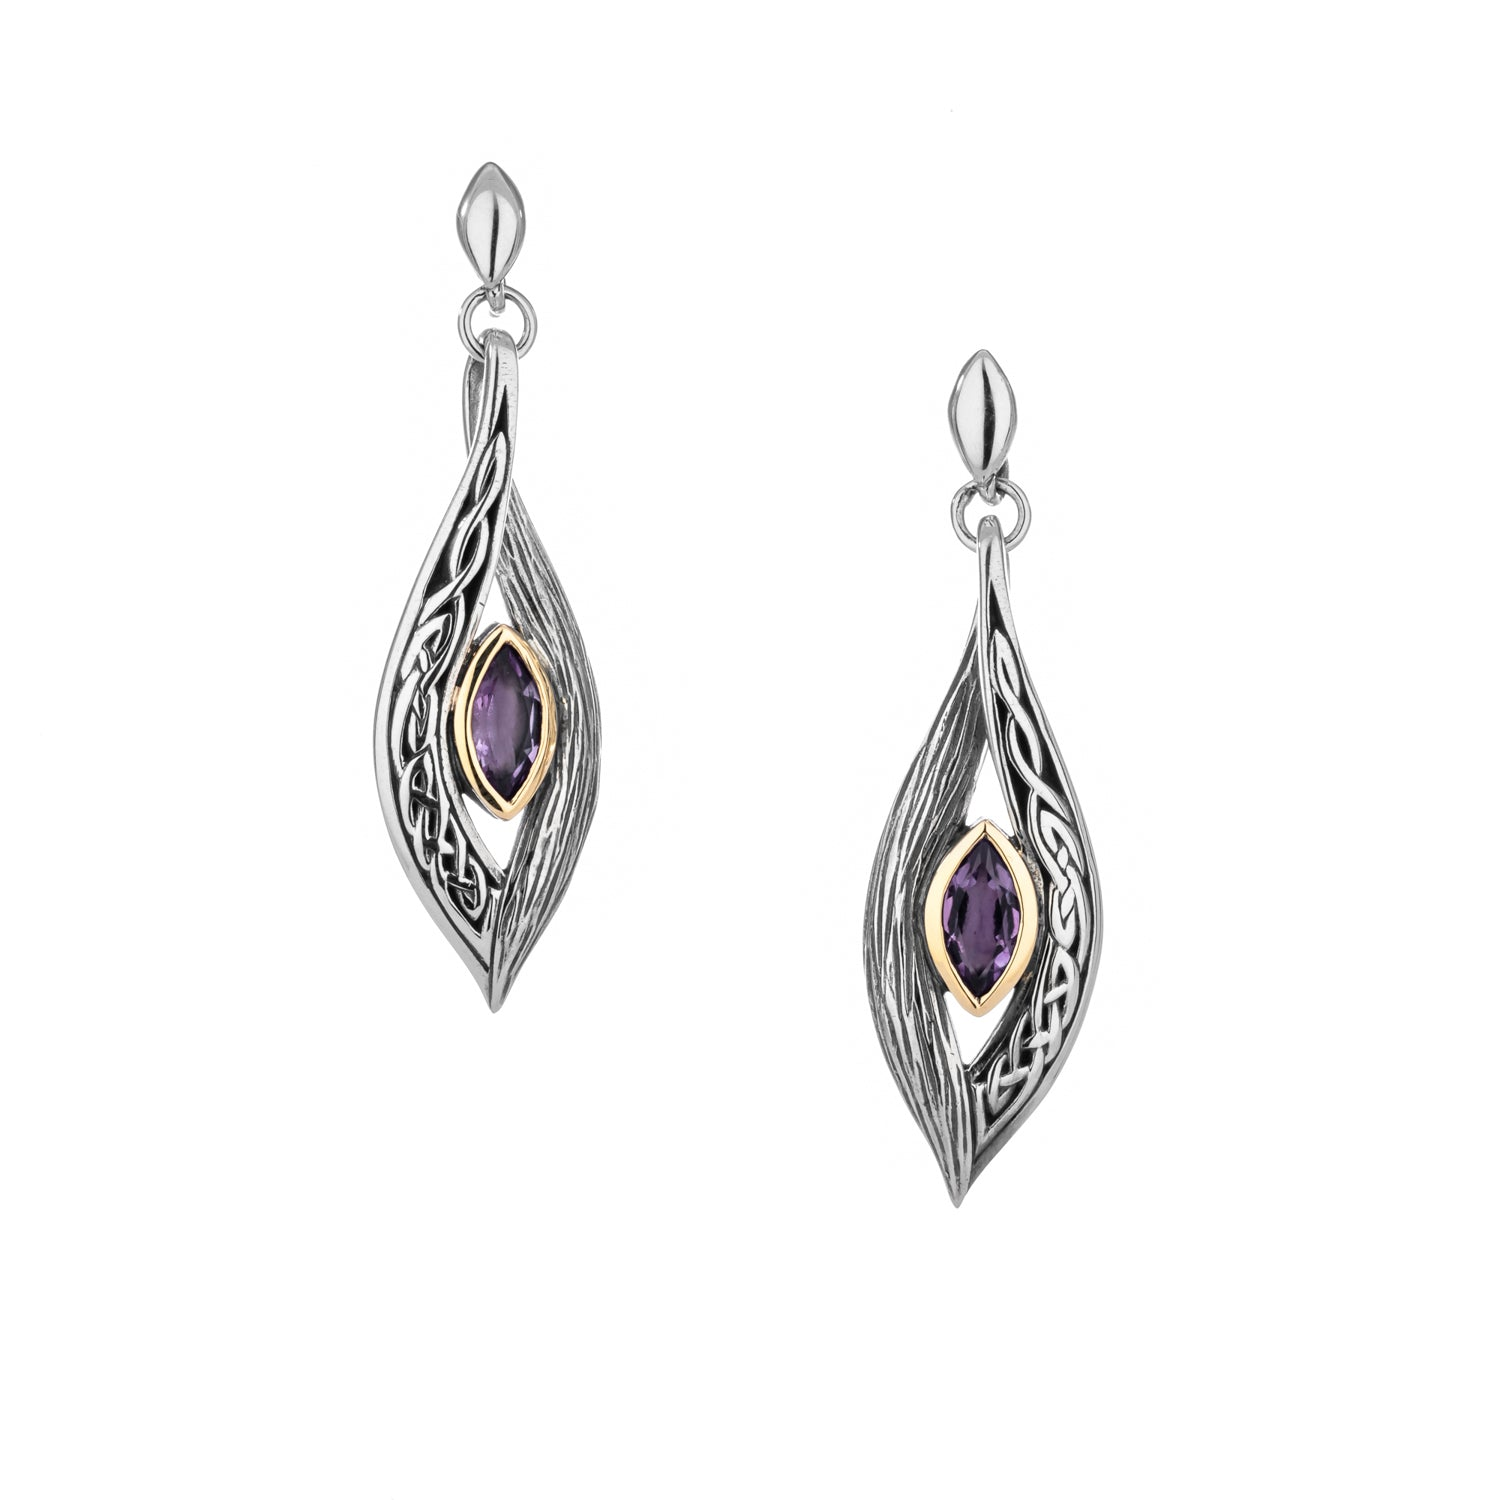 Earrings 10k Amethyst Eternity Knot Elven Post Earrings from welch and company jewelers near syracuse ny